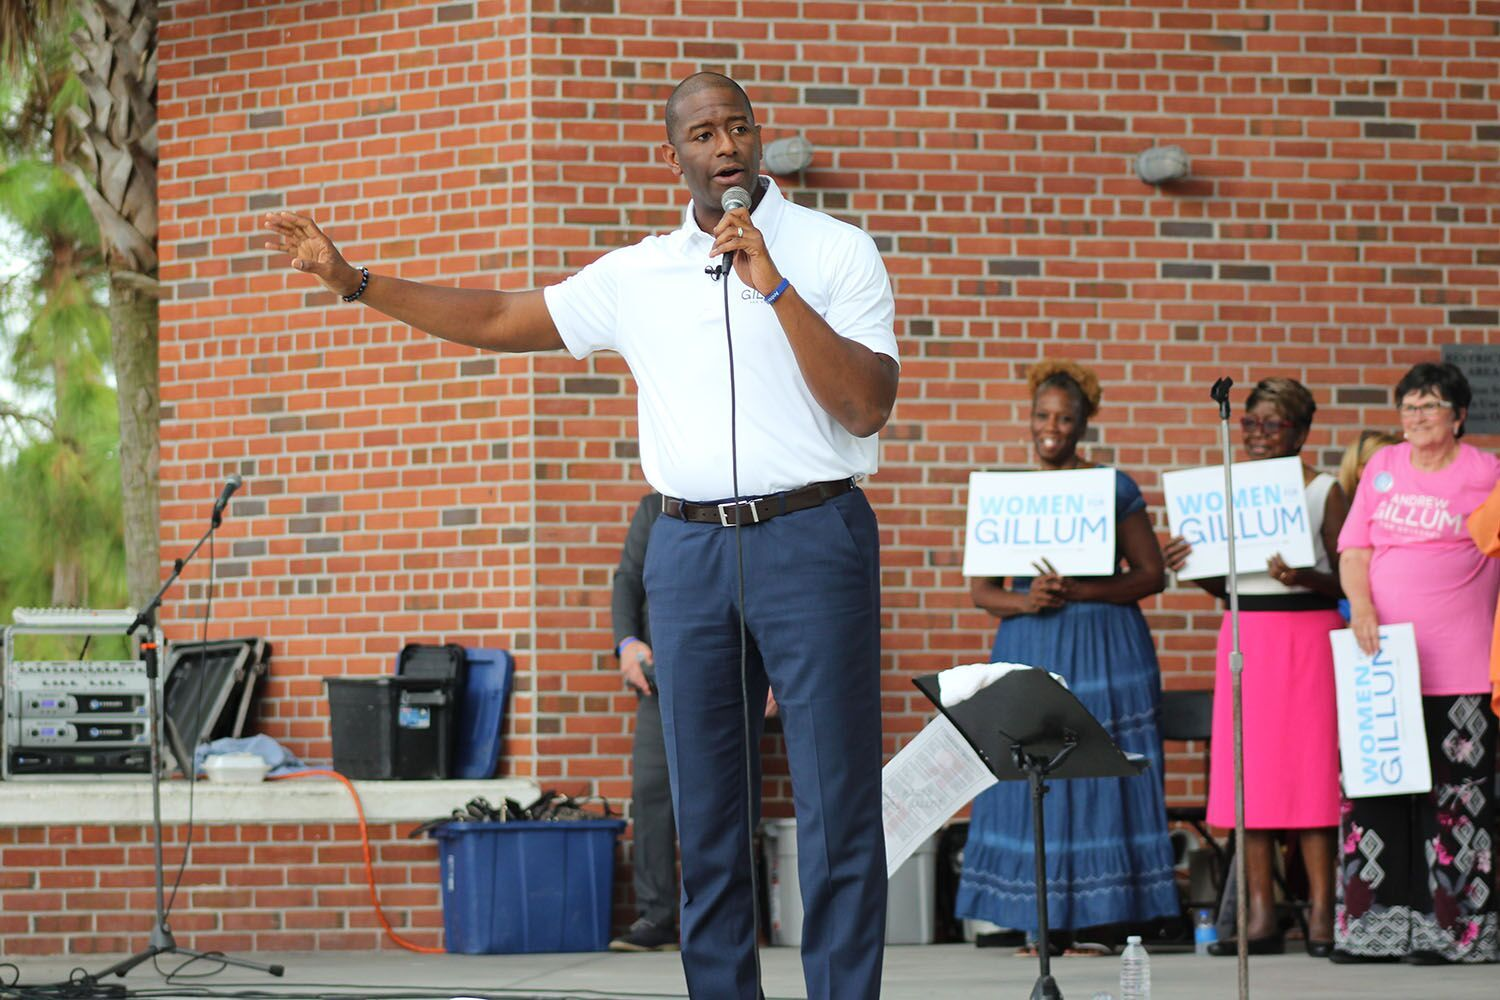 Speaking at the Women for Gillum rally, gubernatorial candidate Andrew Gillum campaigns for office at Waterworks Park Oct. 19. During the rally, he spoke about gun control, healthcare, criminal justice reformation and climate change.